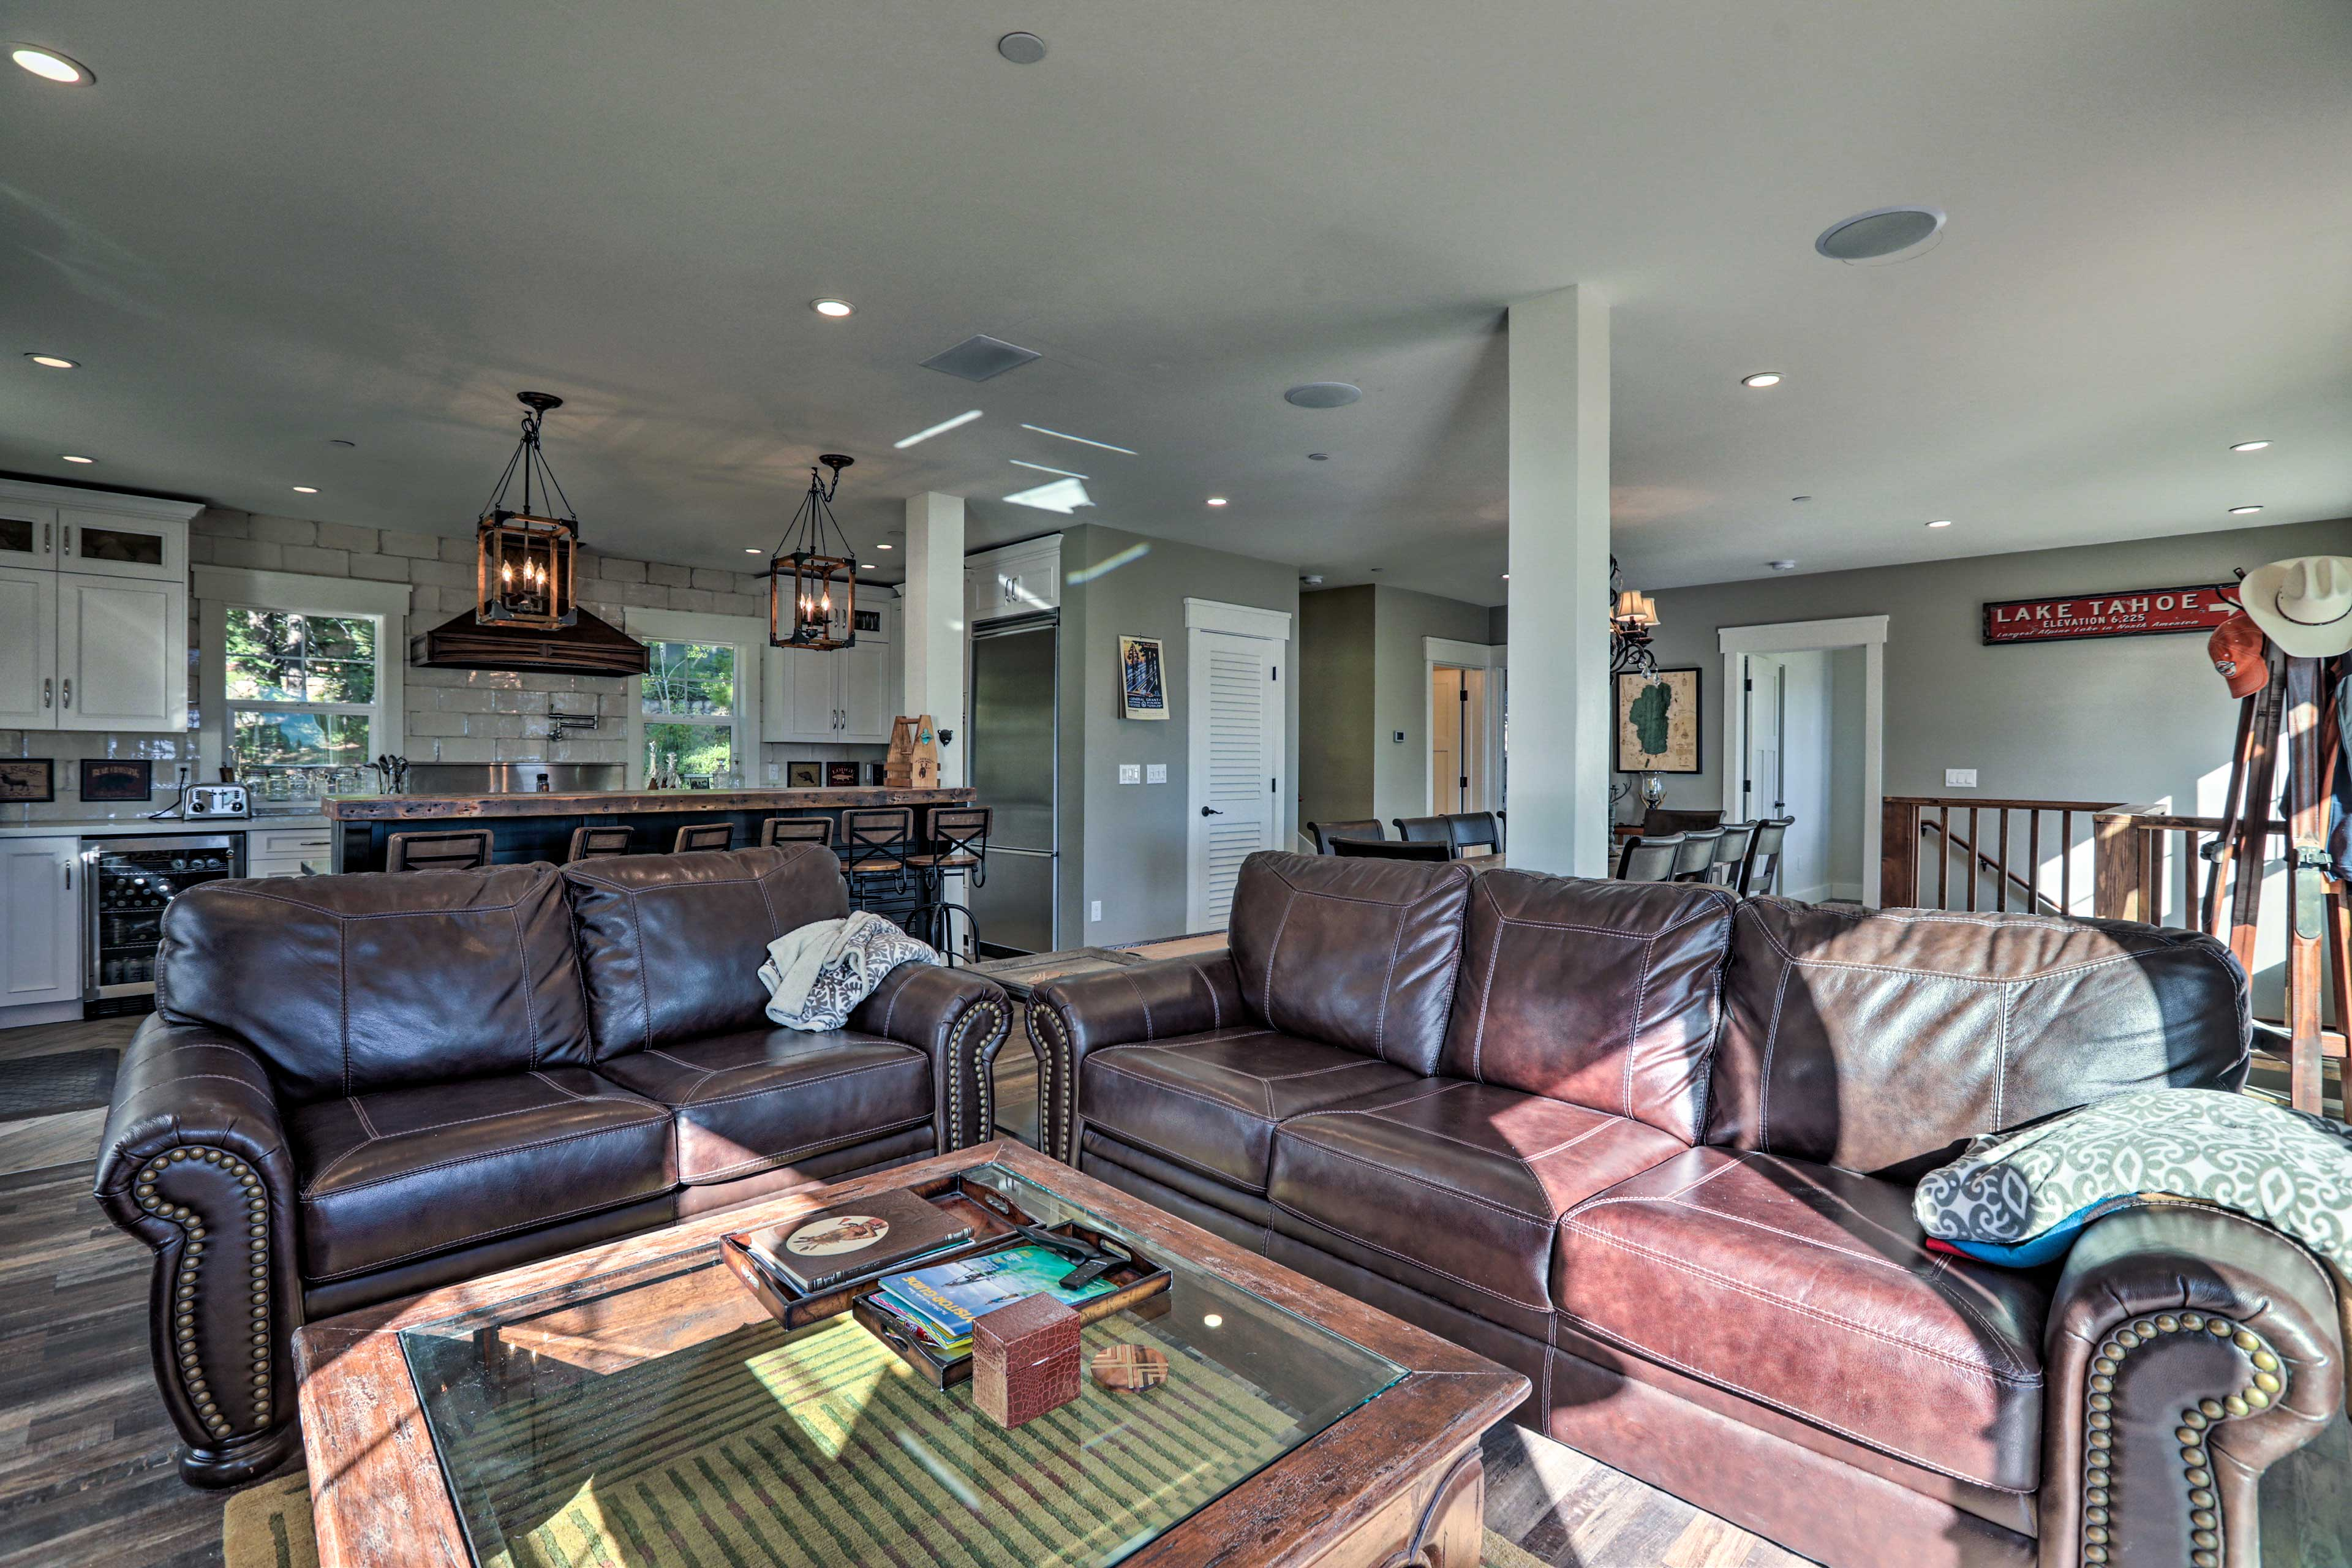 Kick back on the leather couches after day on the slopes or the lake.